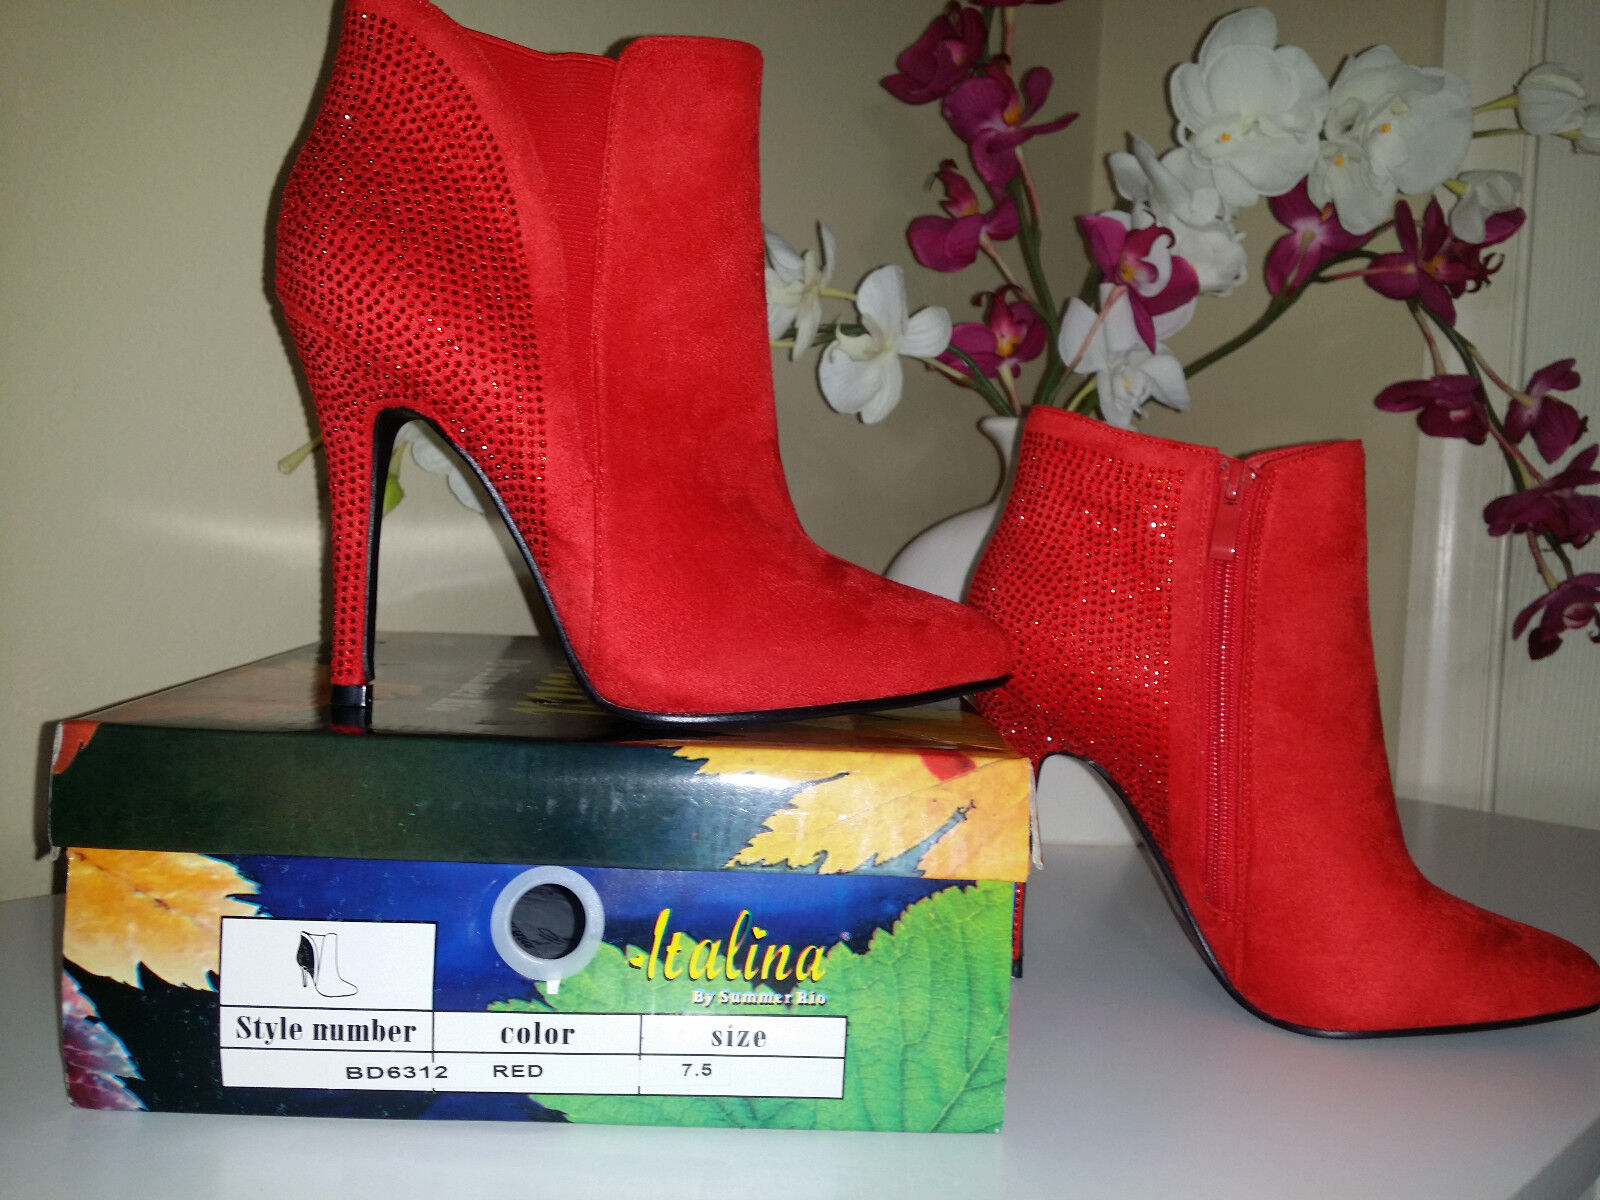 ITALINA By SUMMER RIO BD6312 Red  Rhinestones Suede Stiletto Ankle Boots Sz 7,5